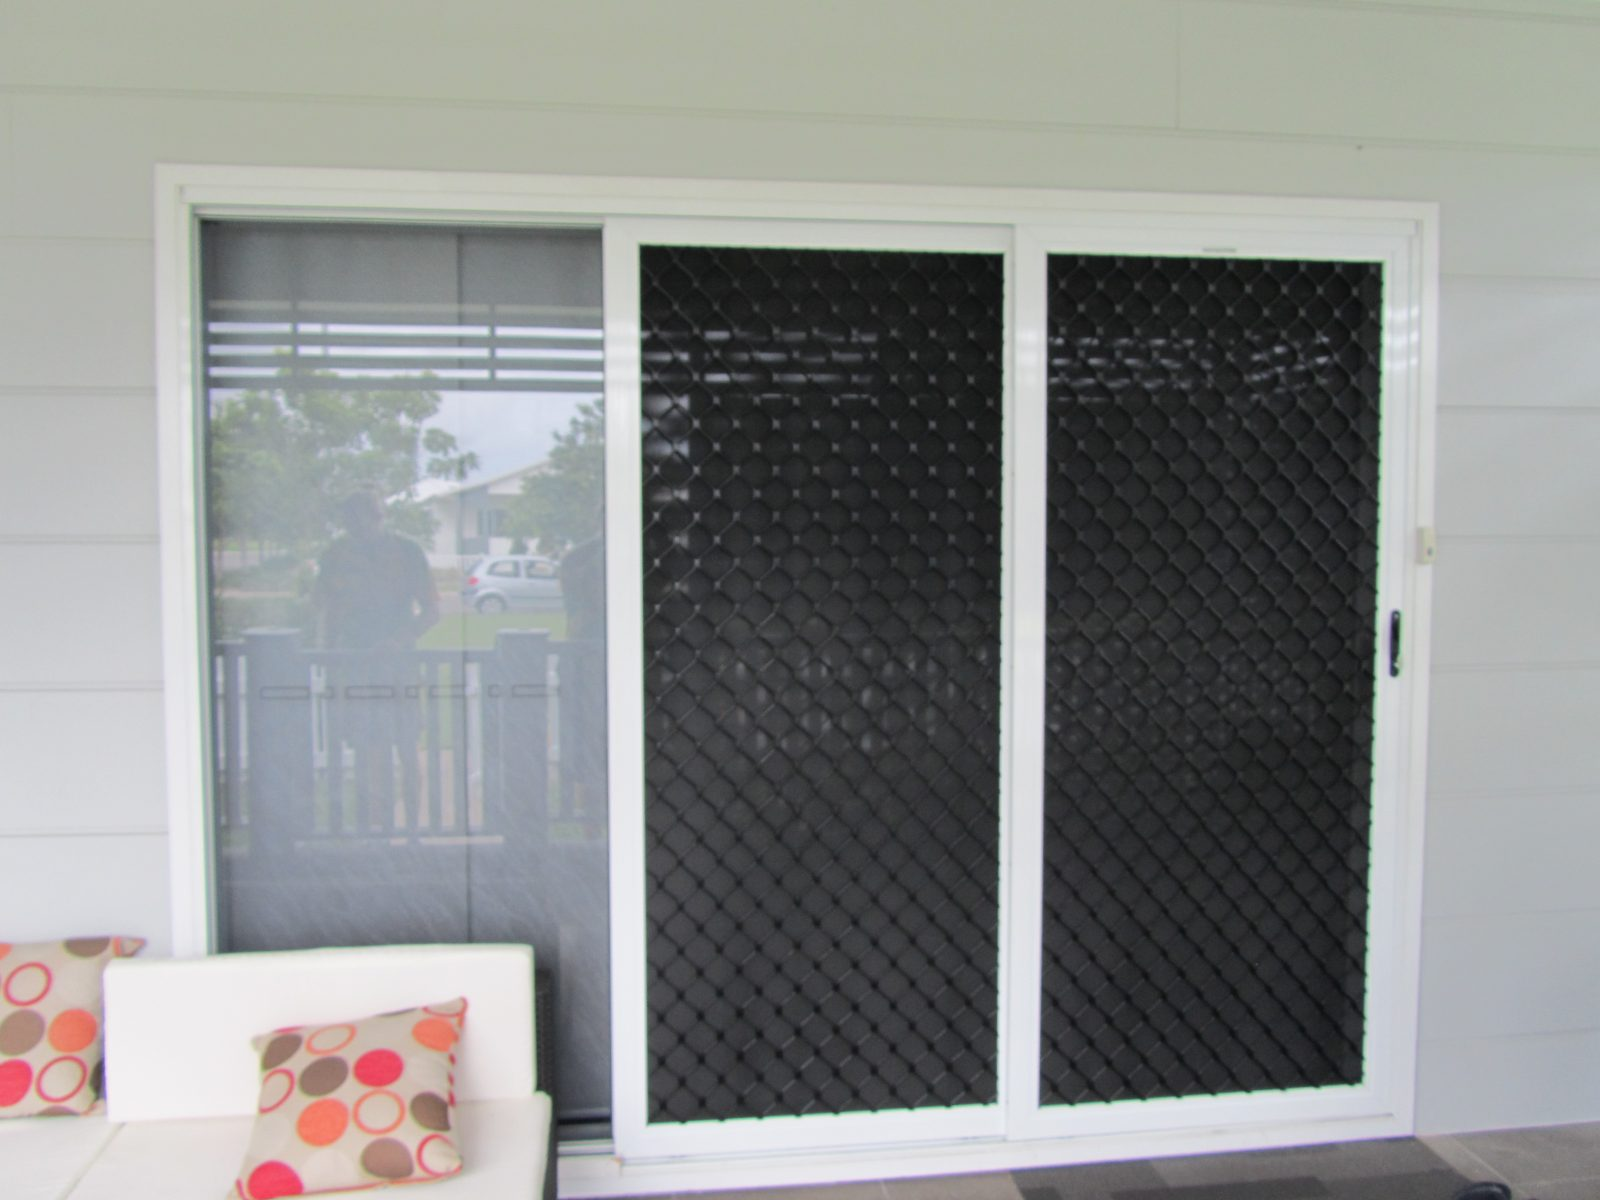 Security doors screens diamond grille stainless steel for Can french doors have screens